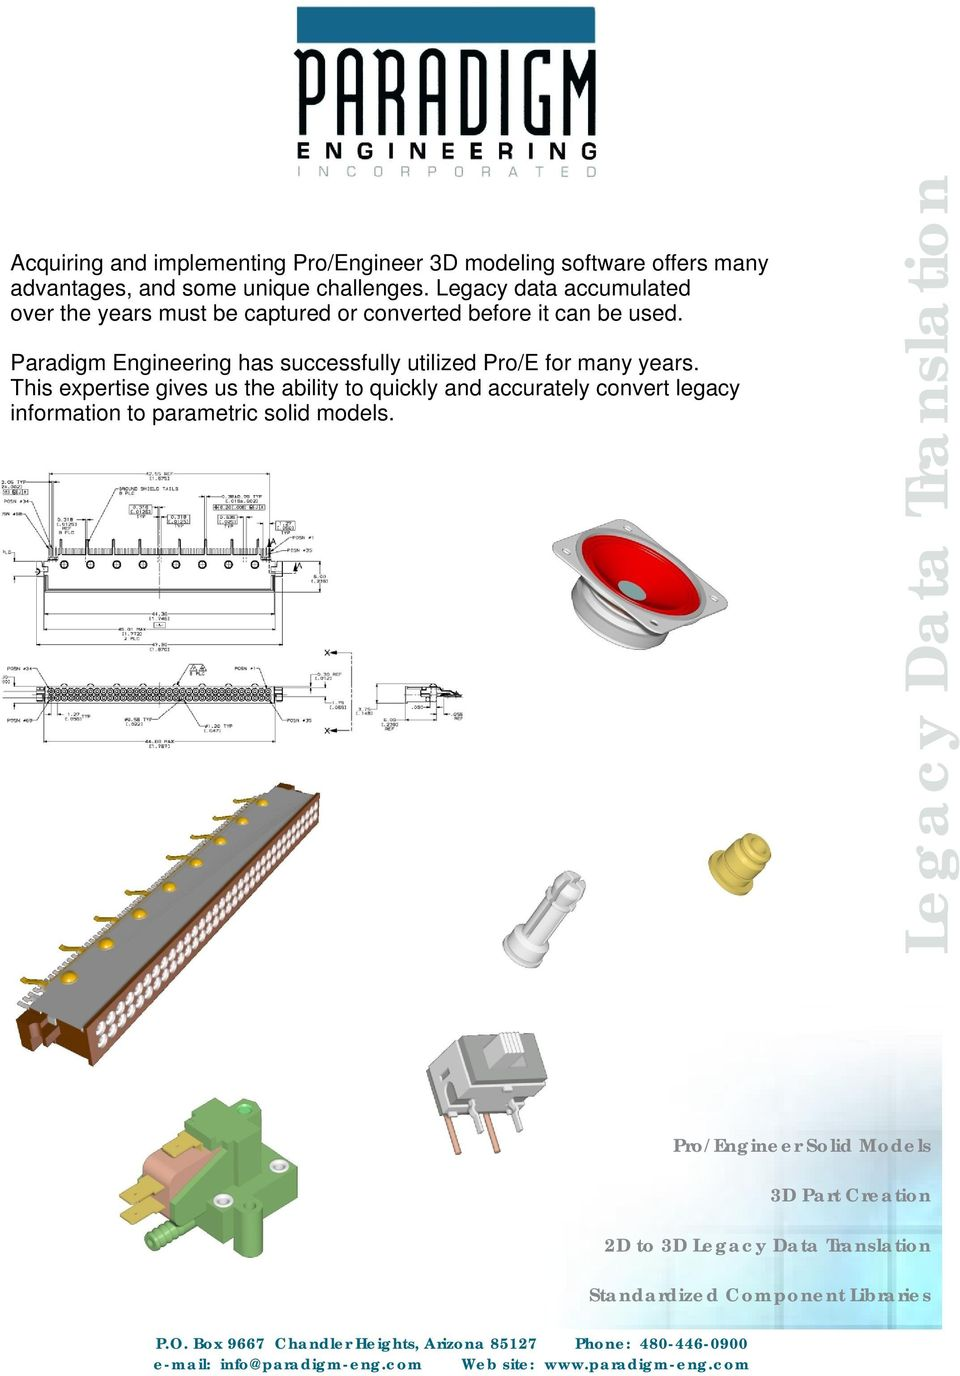 Paradigm Engineering has successfully utilized Pro/E for many years.